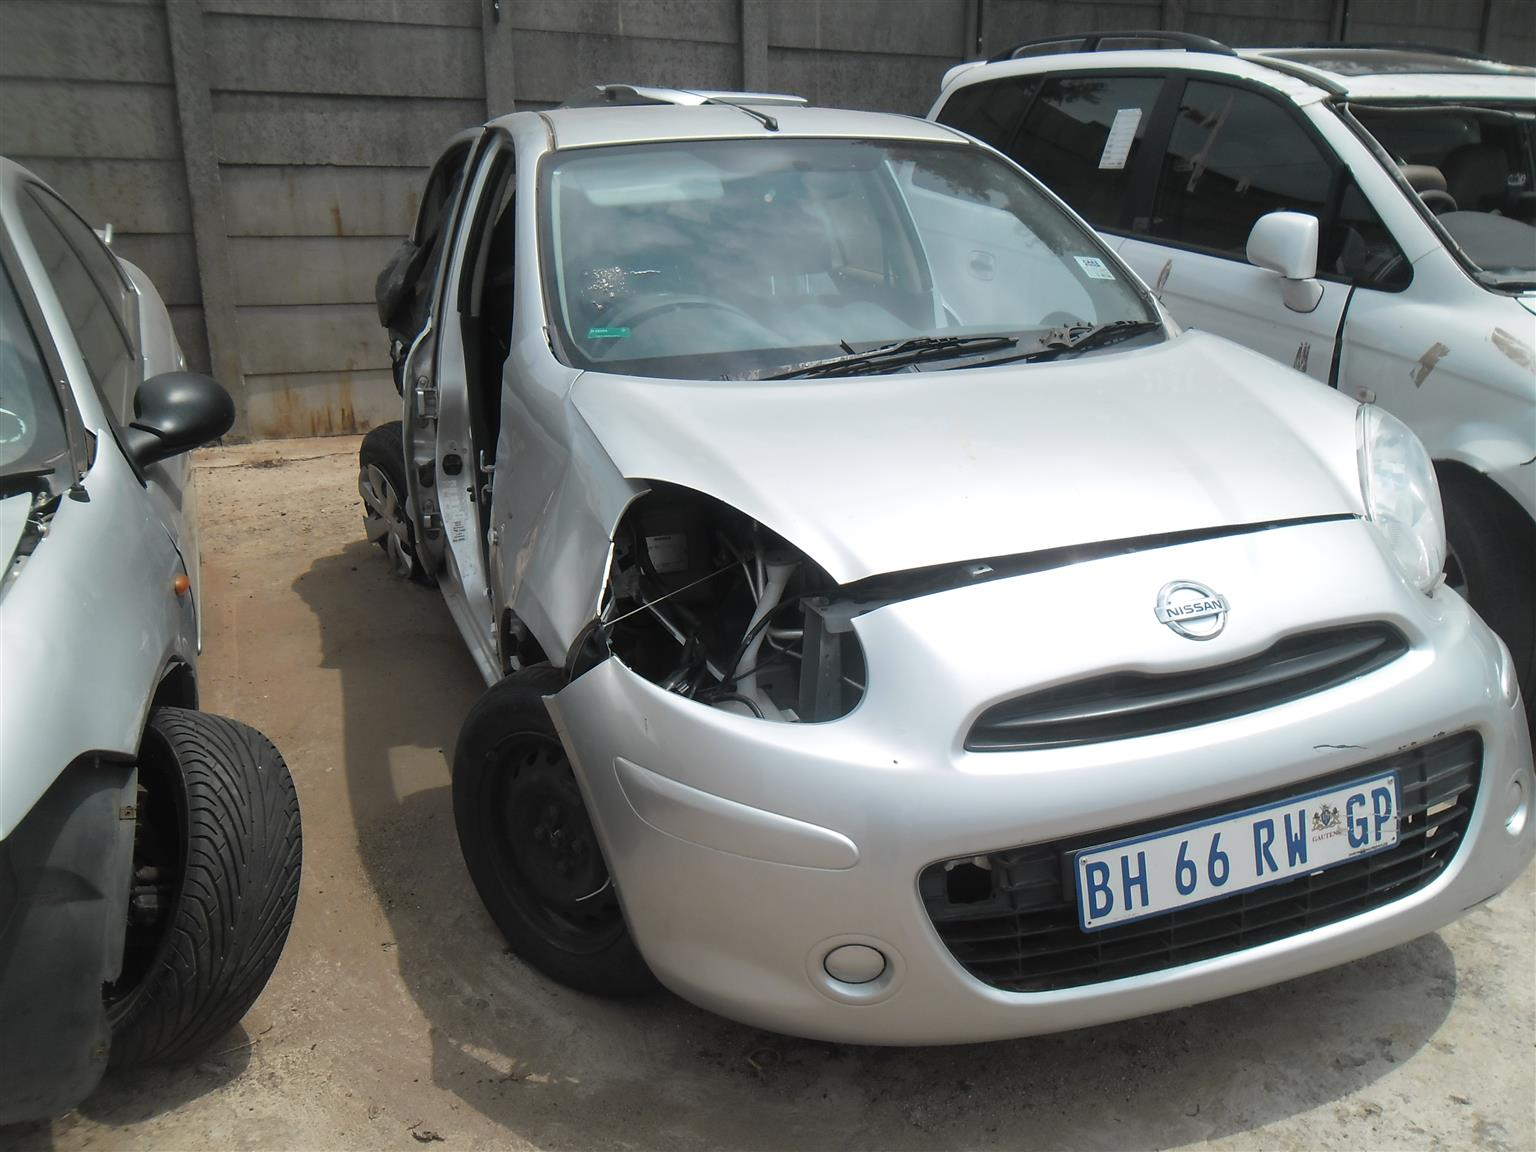 NISSAN MICRA STRIPPING FOR PARTS GEAR BOX FOR SALE